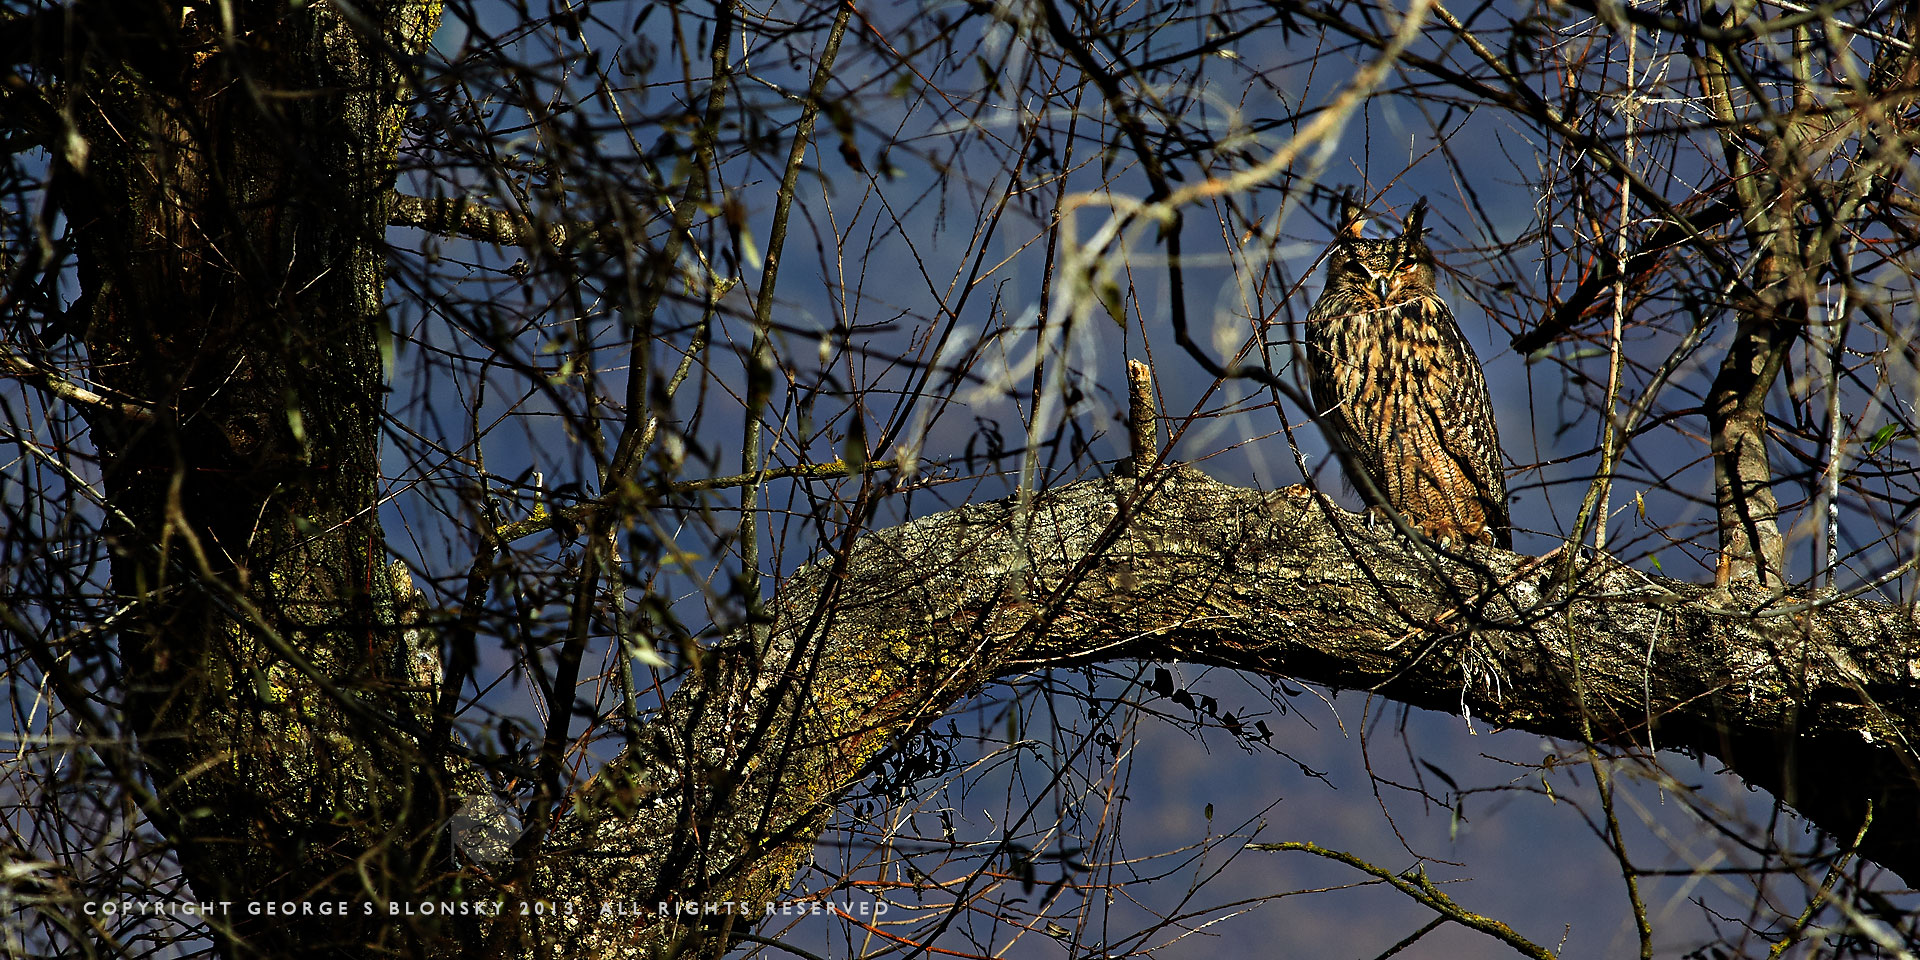 Eagle Owl roosting in the Lake Kerkini submerged forest